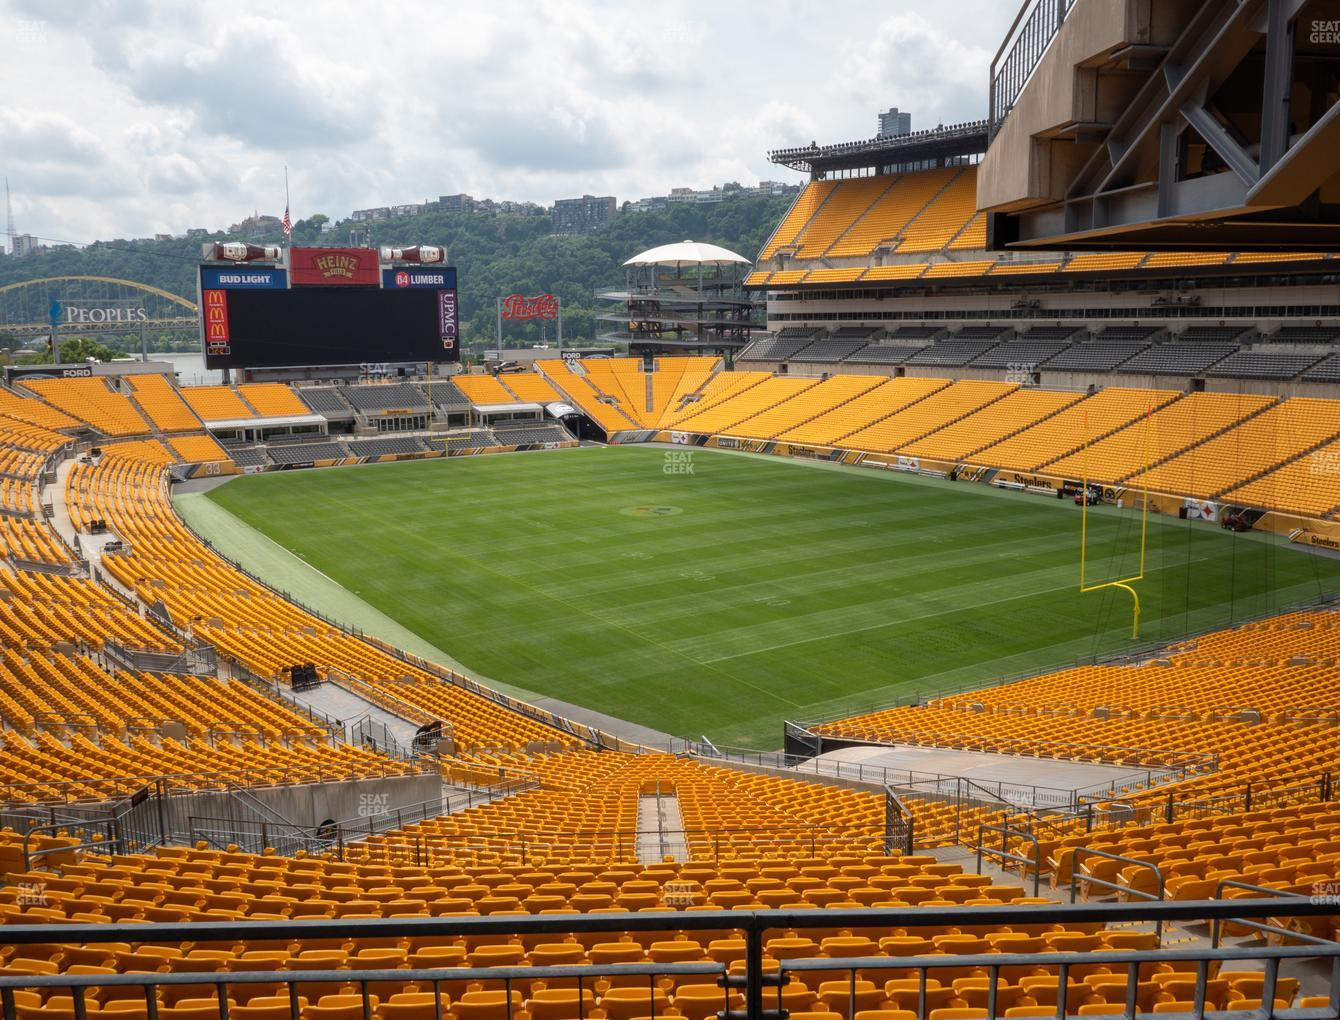 Pittsburgh Steelers at Heinz Field North Club 003 View